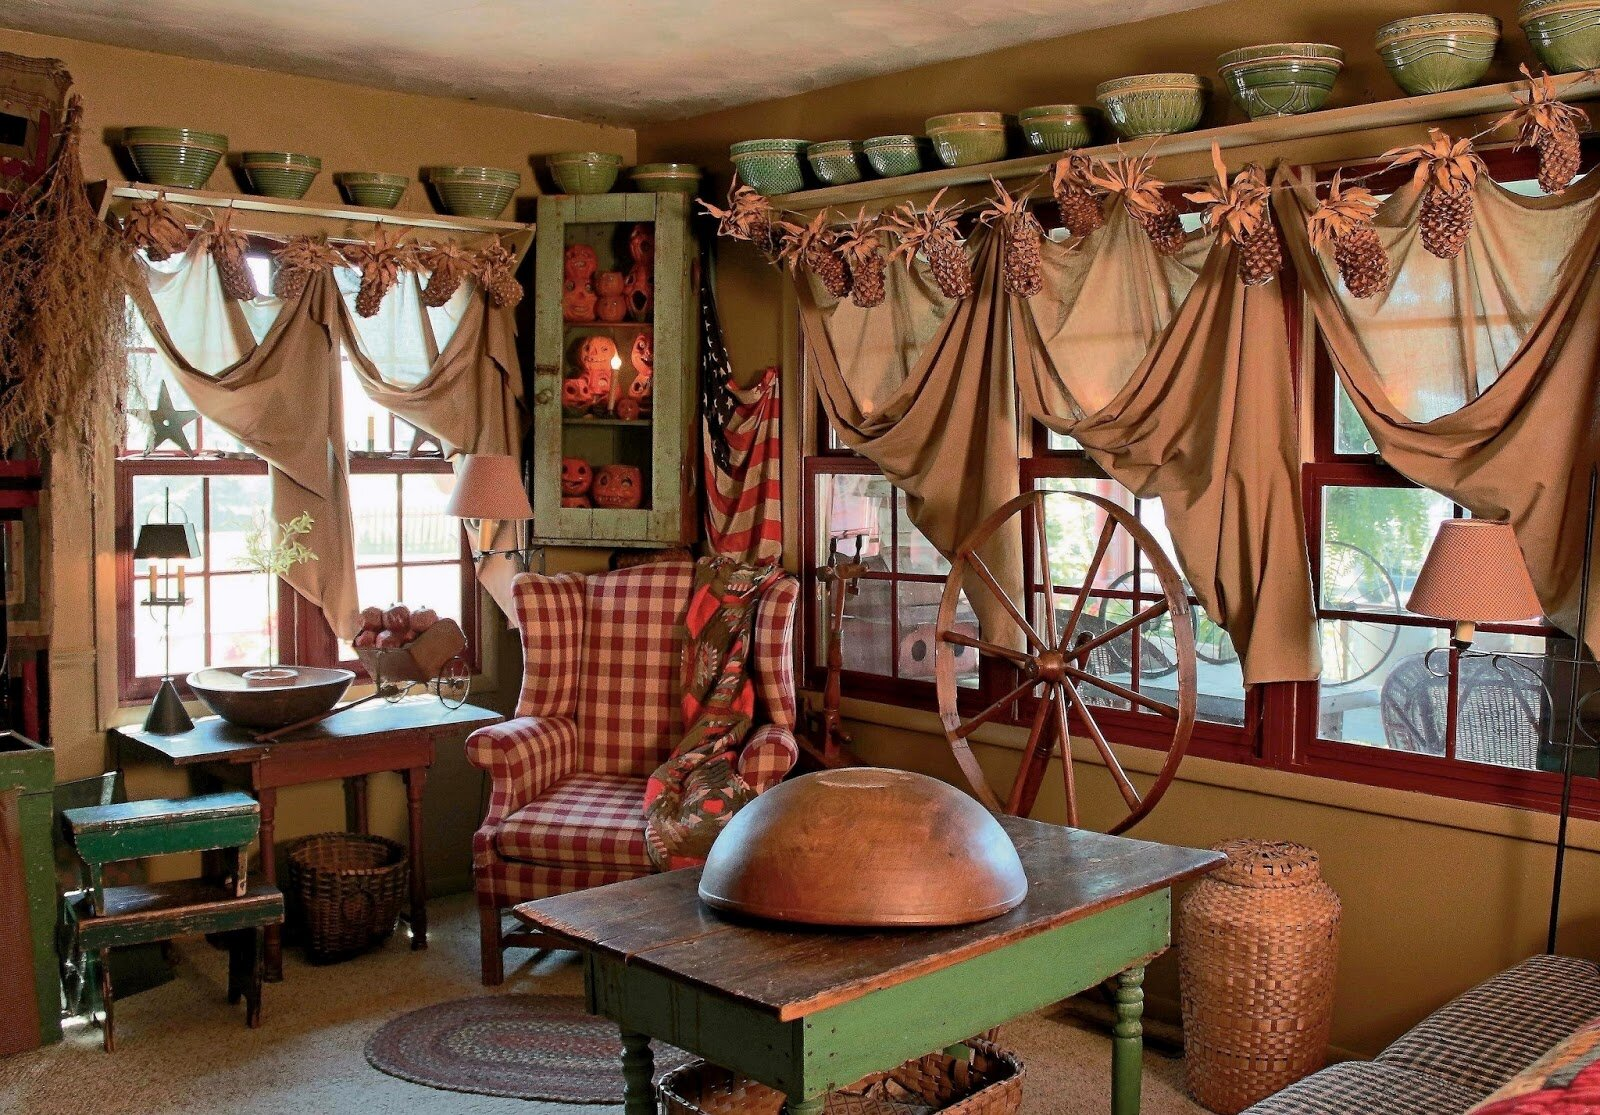 Decor Primitive Home Ideas Primitive Country Decor In This Photo